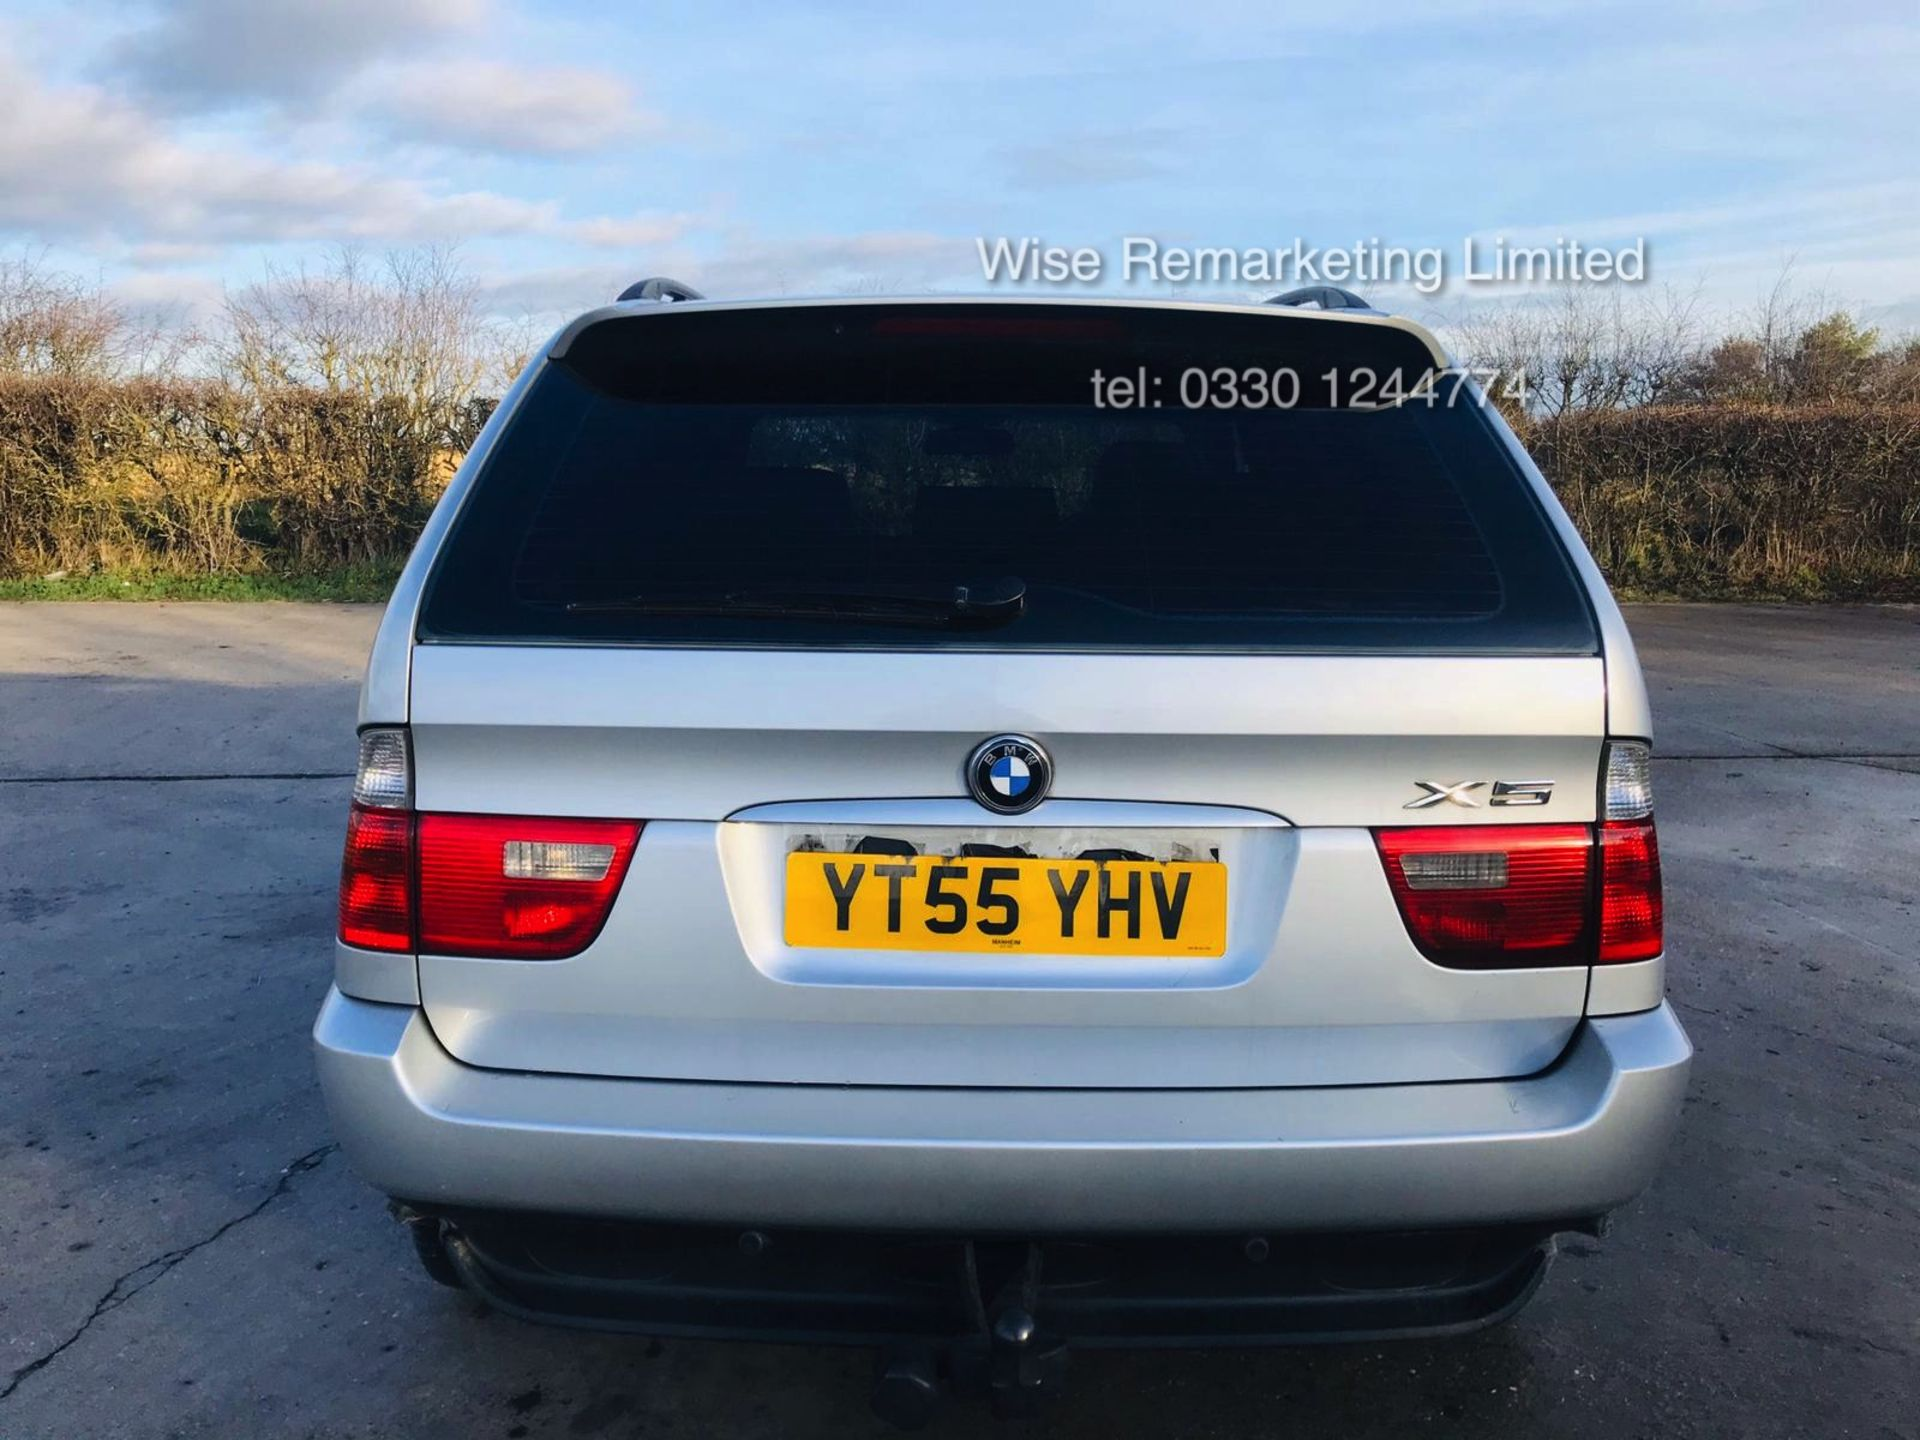 Lot 43 - BMW X5 Sport 3.0d Auto - 2006 Model - Full Leather - Heated Seats - Fully Loaded